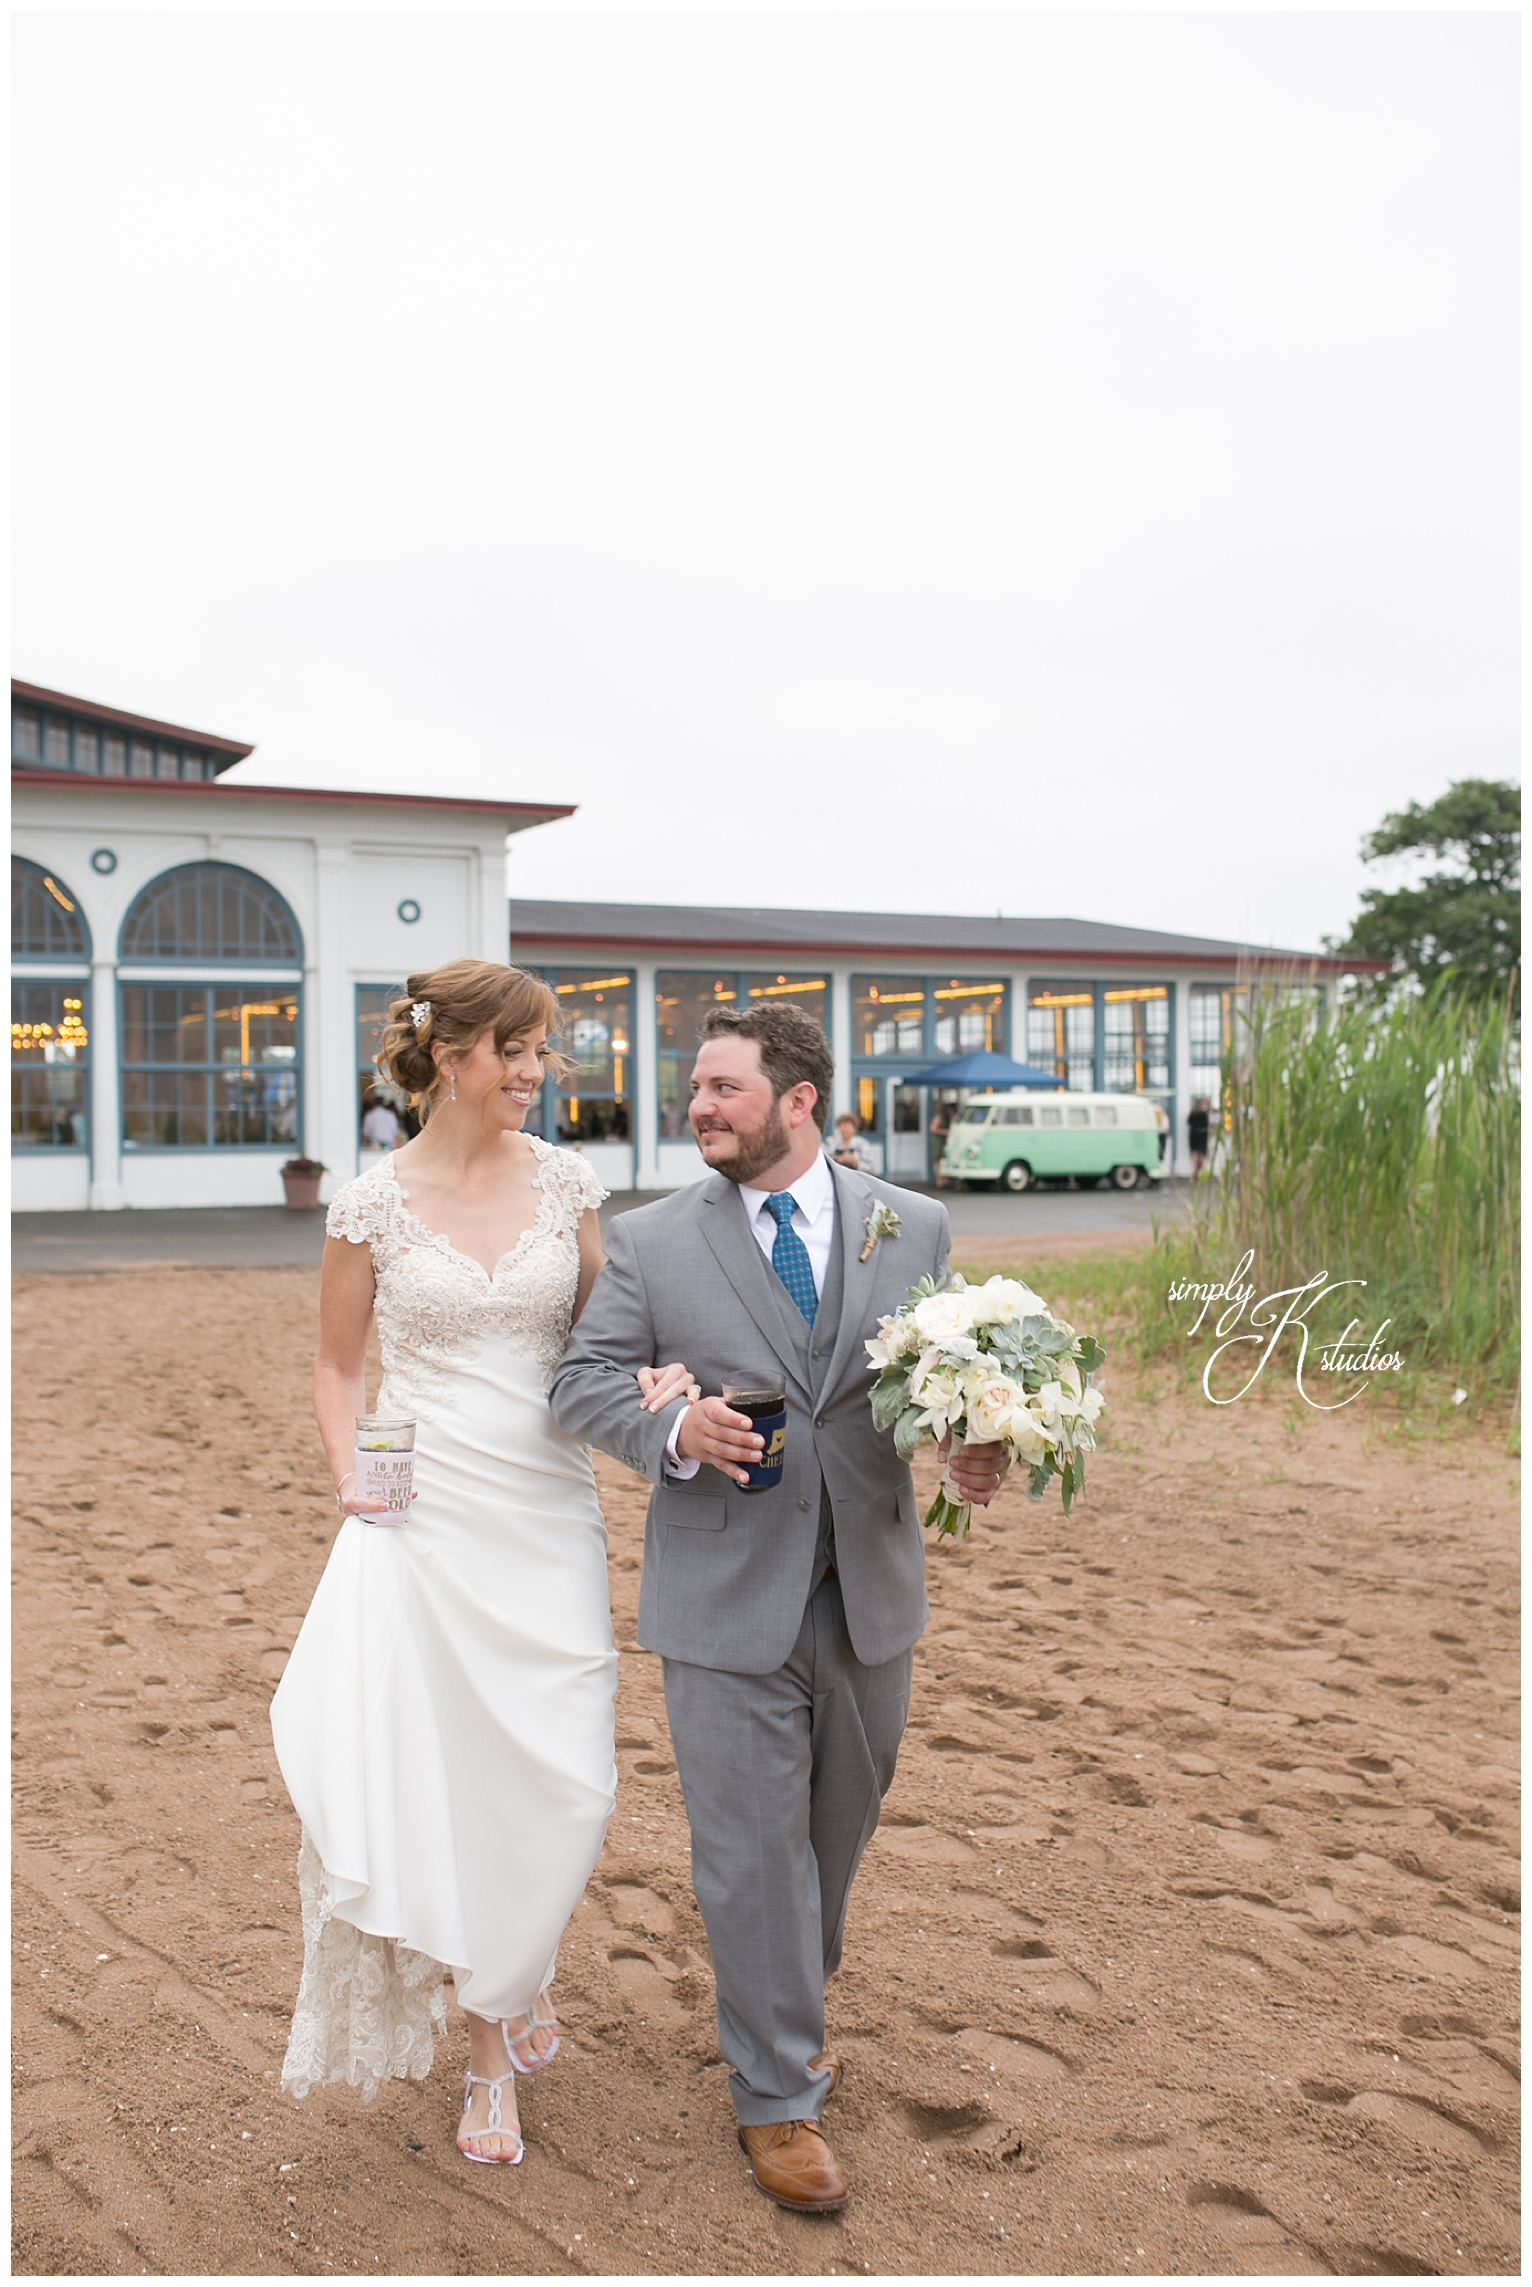 Beach Venues in CT for a Wedding.jpg